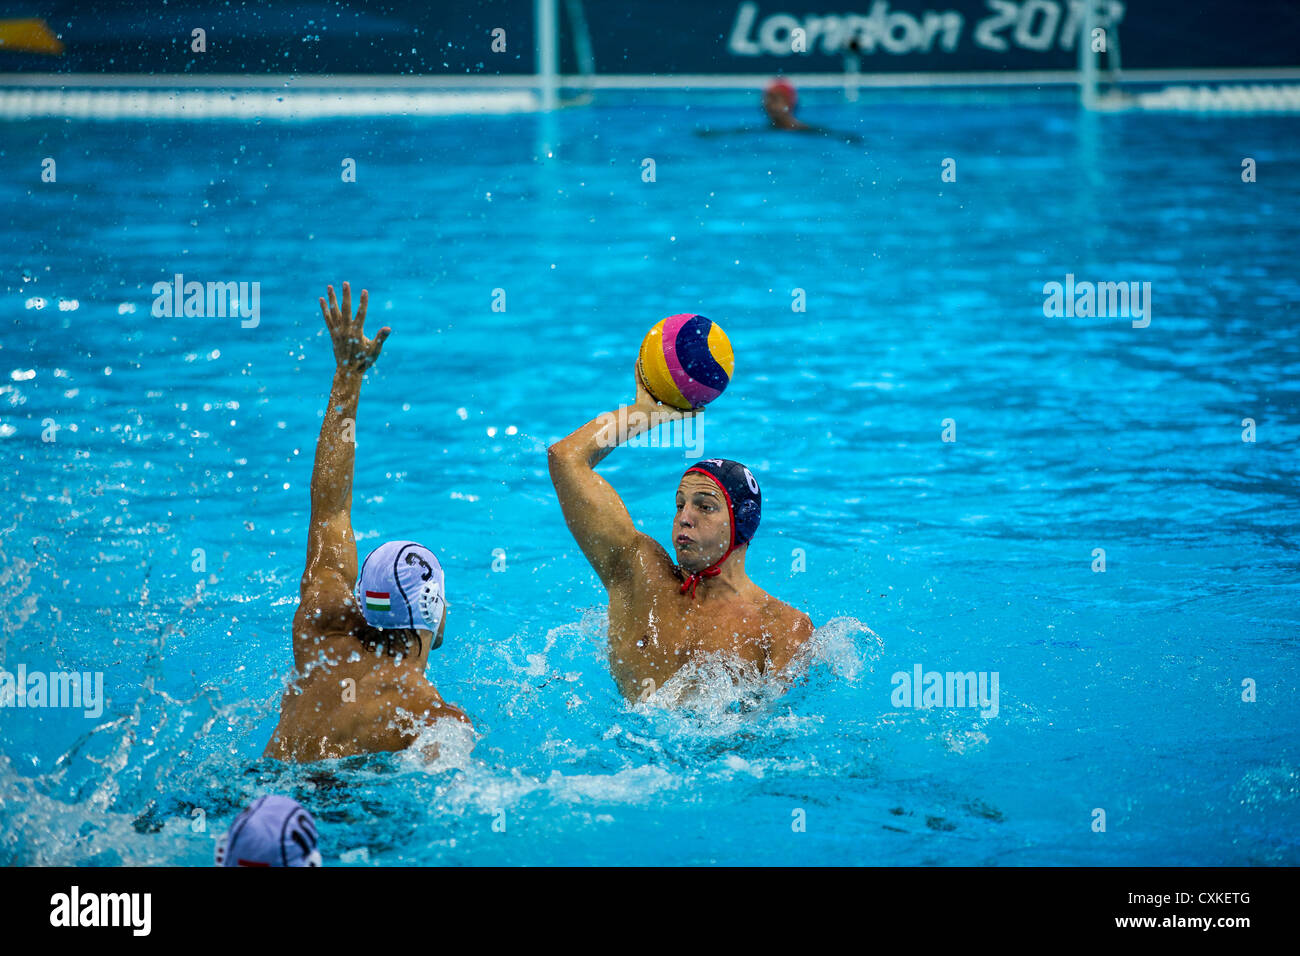 Shea Buckner (USA) during the USA vs.Hungary Men's Water Polo game at the Olympic Summer Games, London 2012 - Stock Image